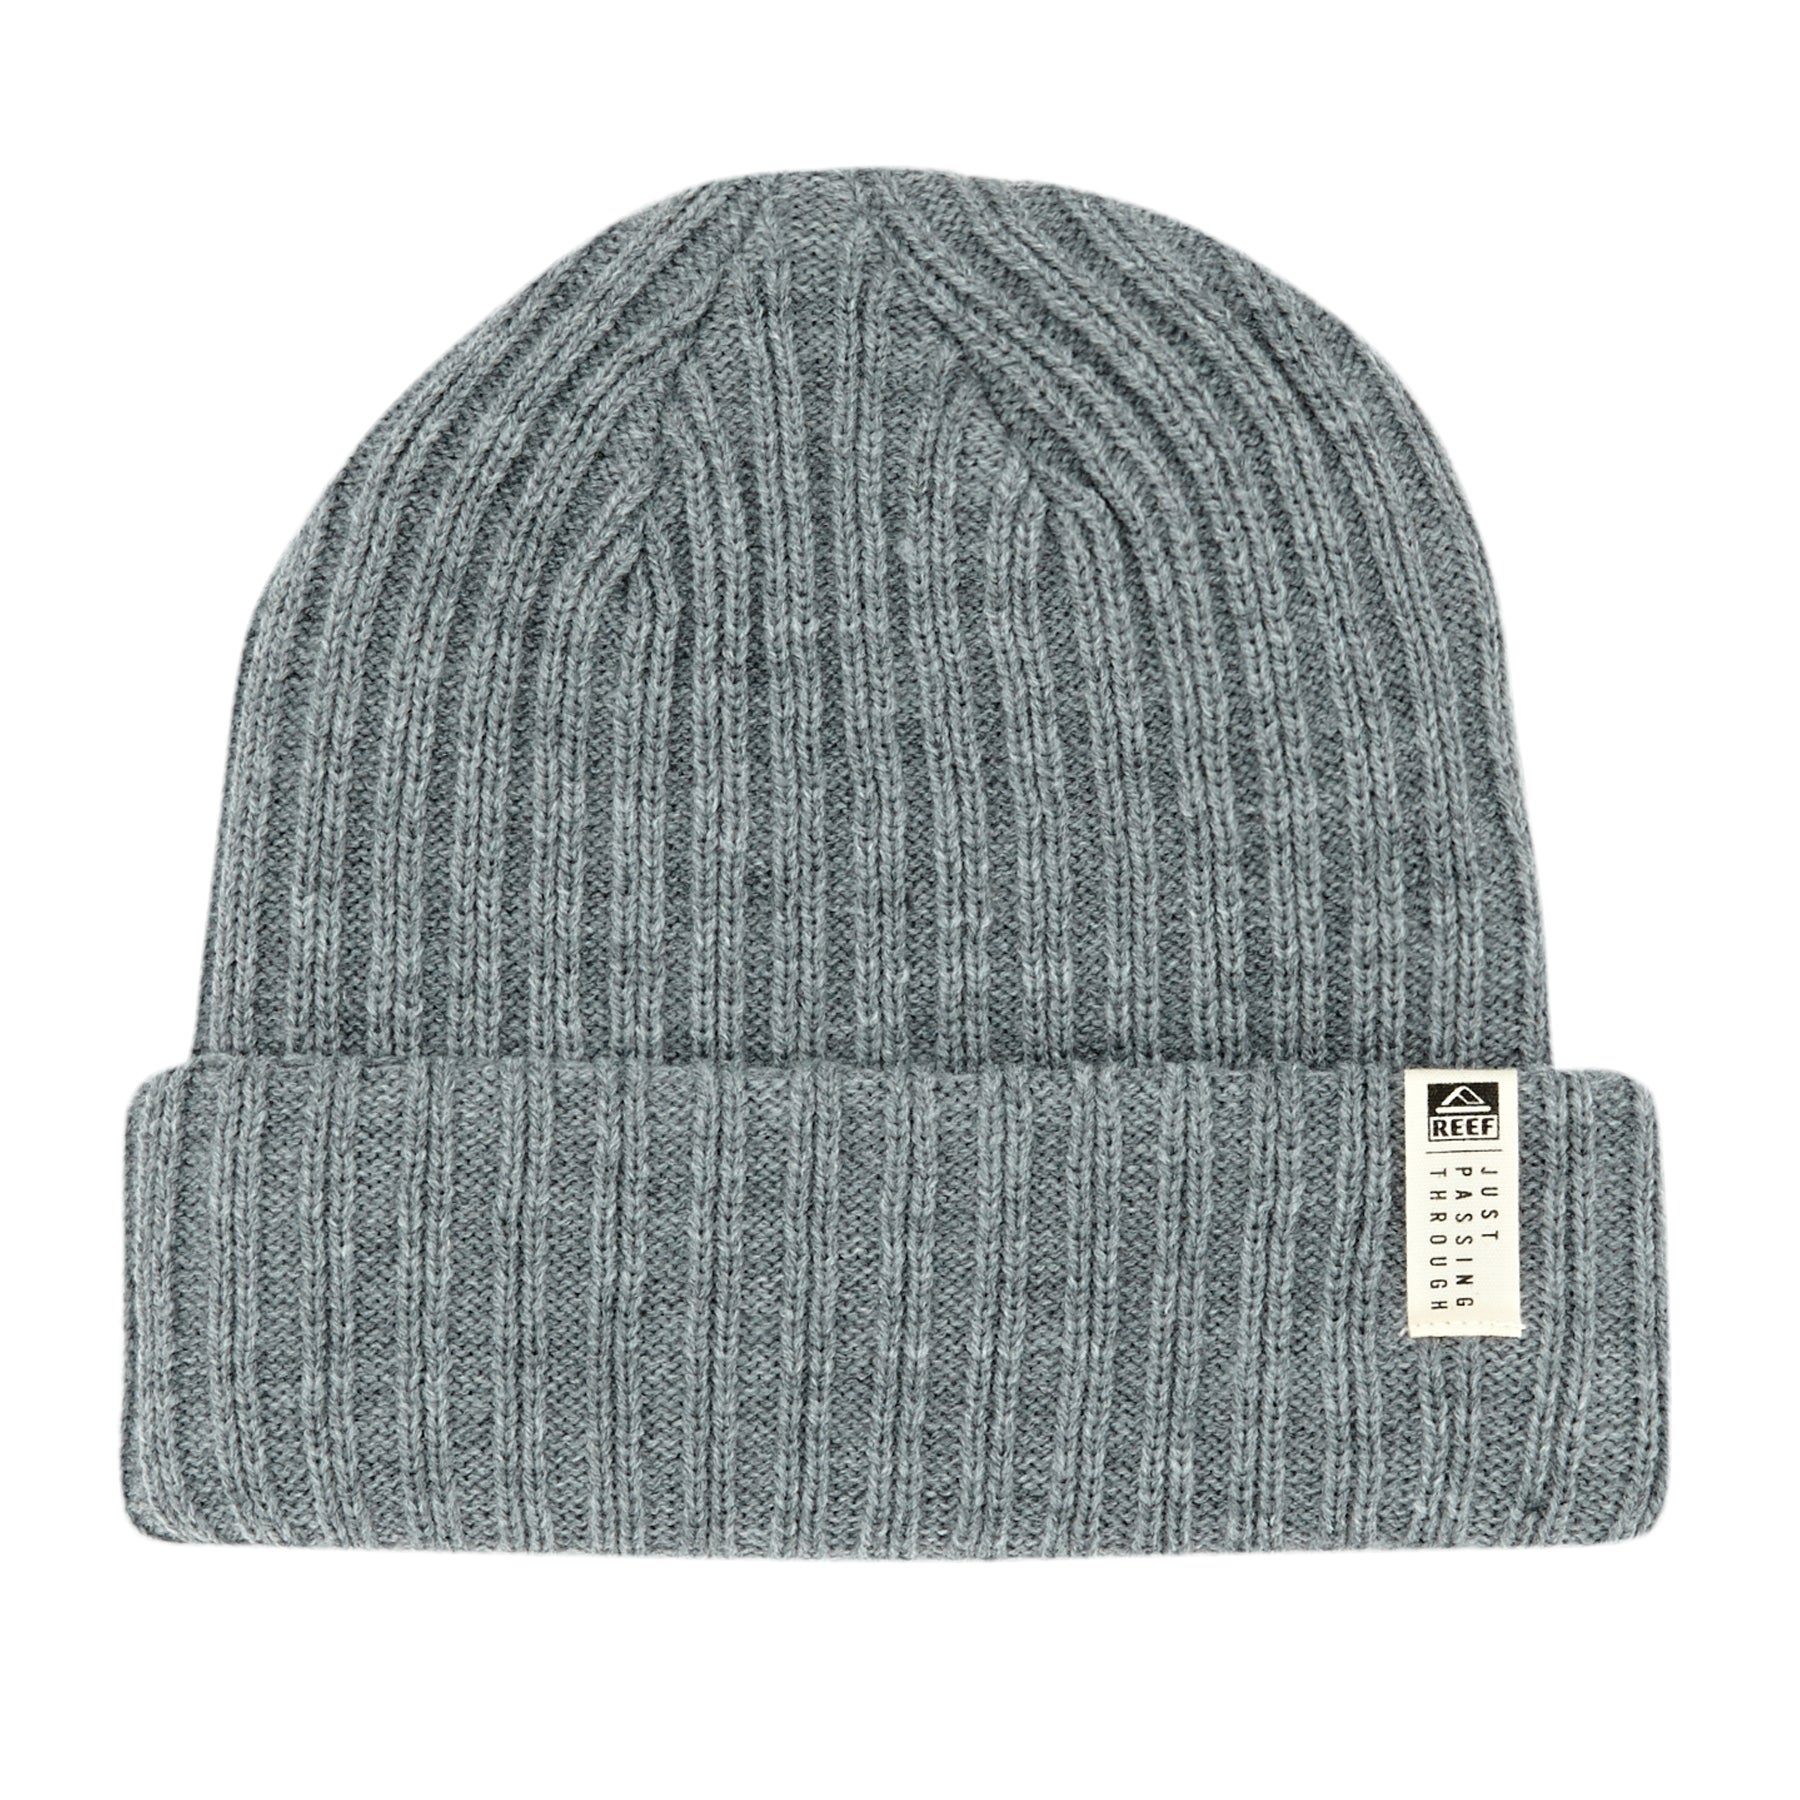 Bonnet Reef Mcclurg II - Heather Grey